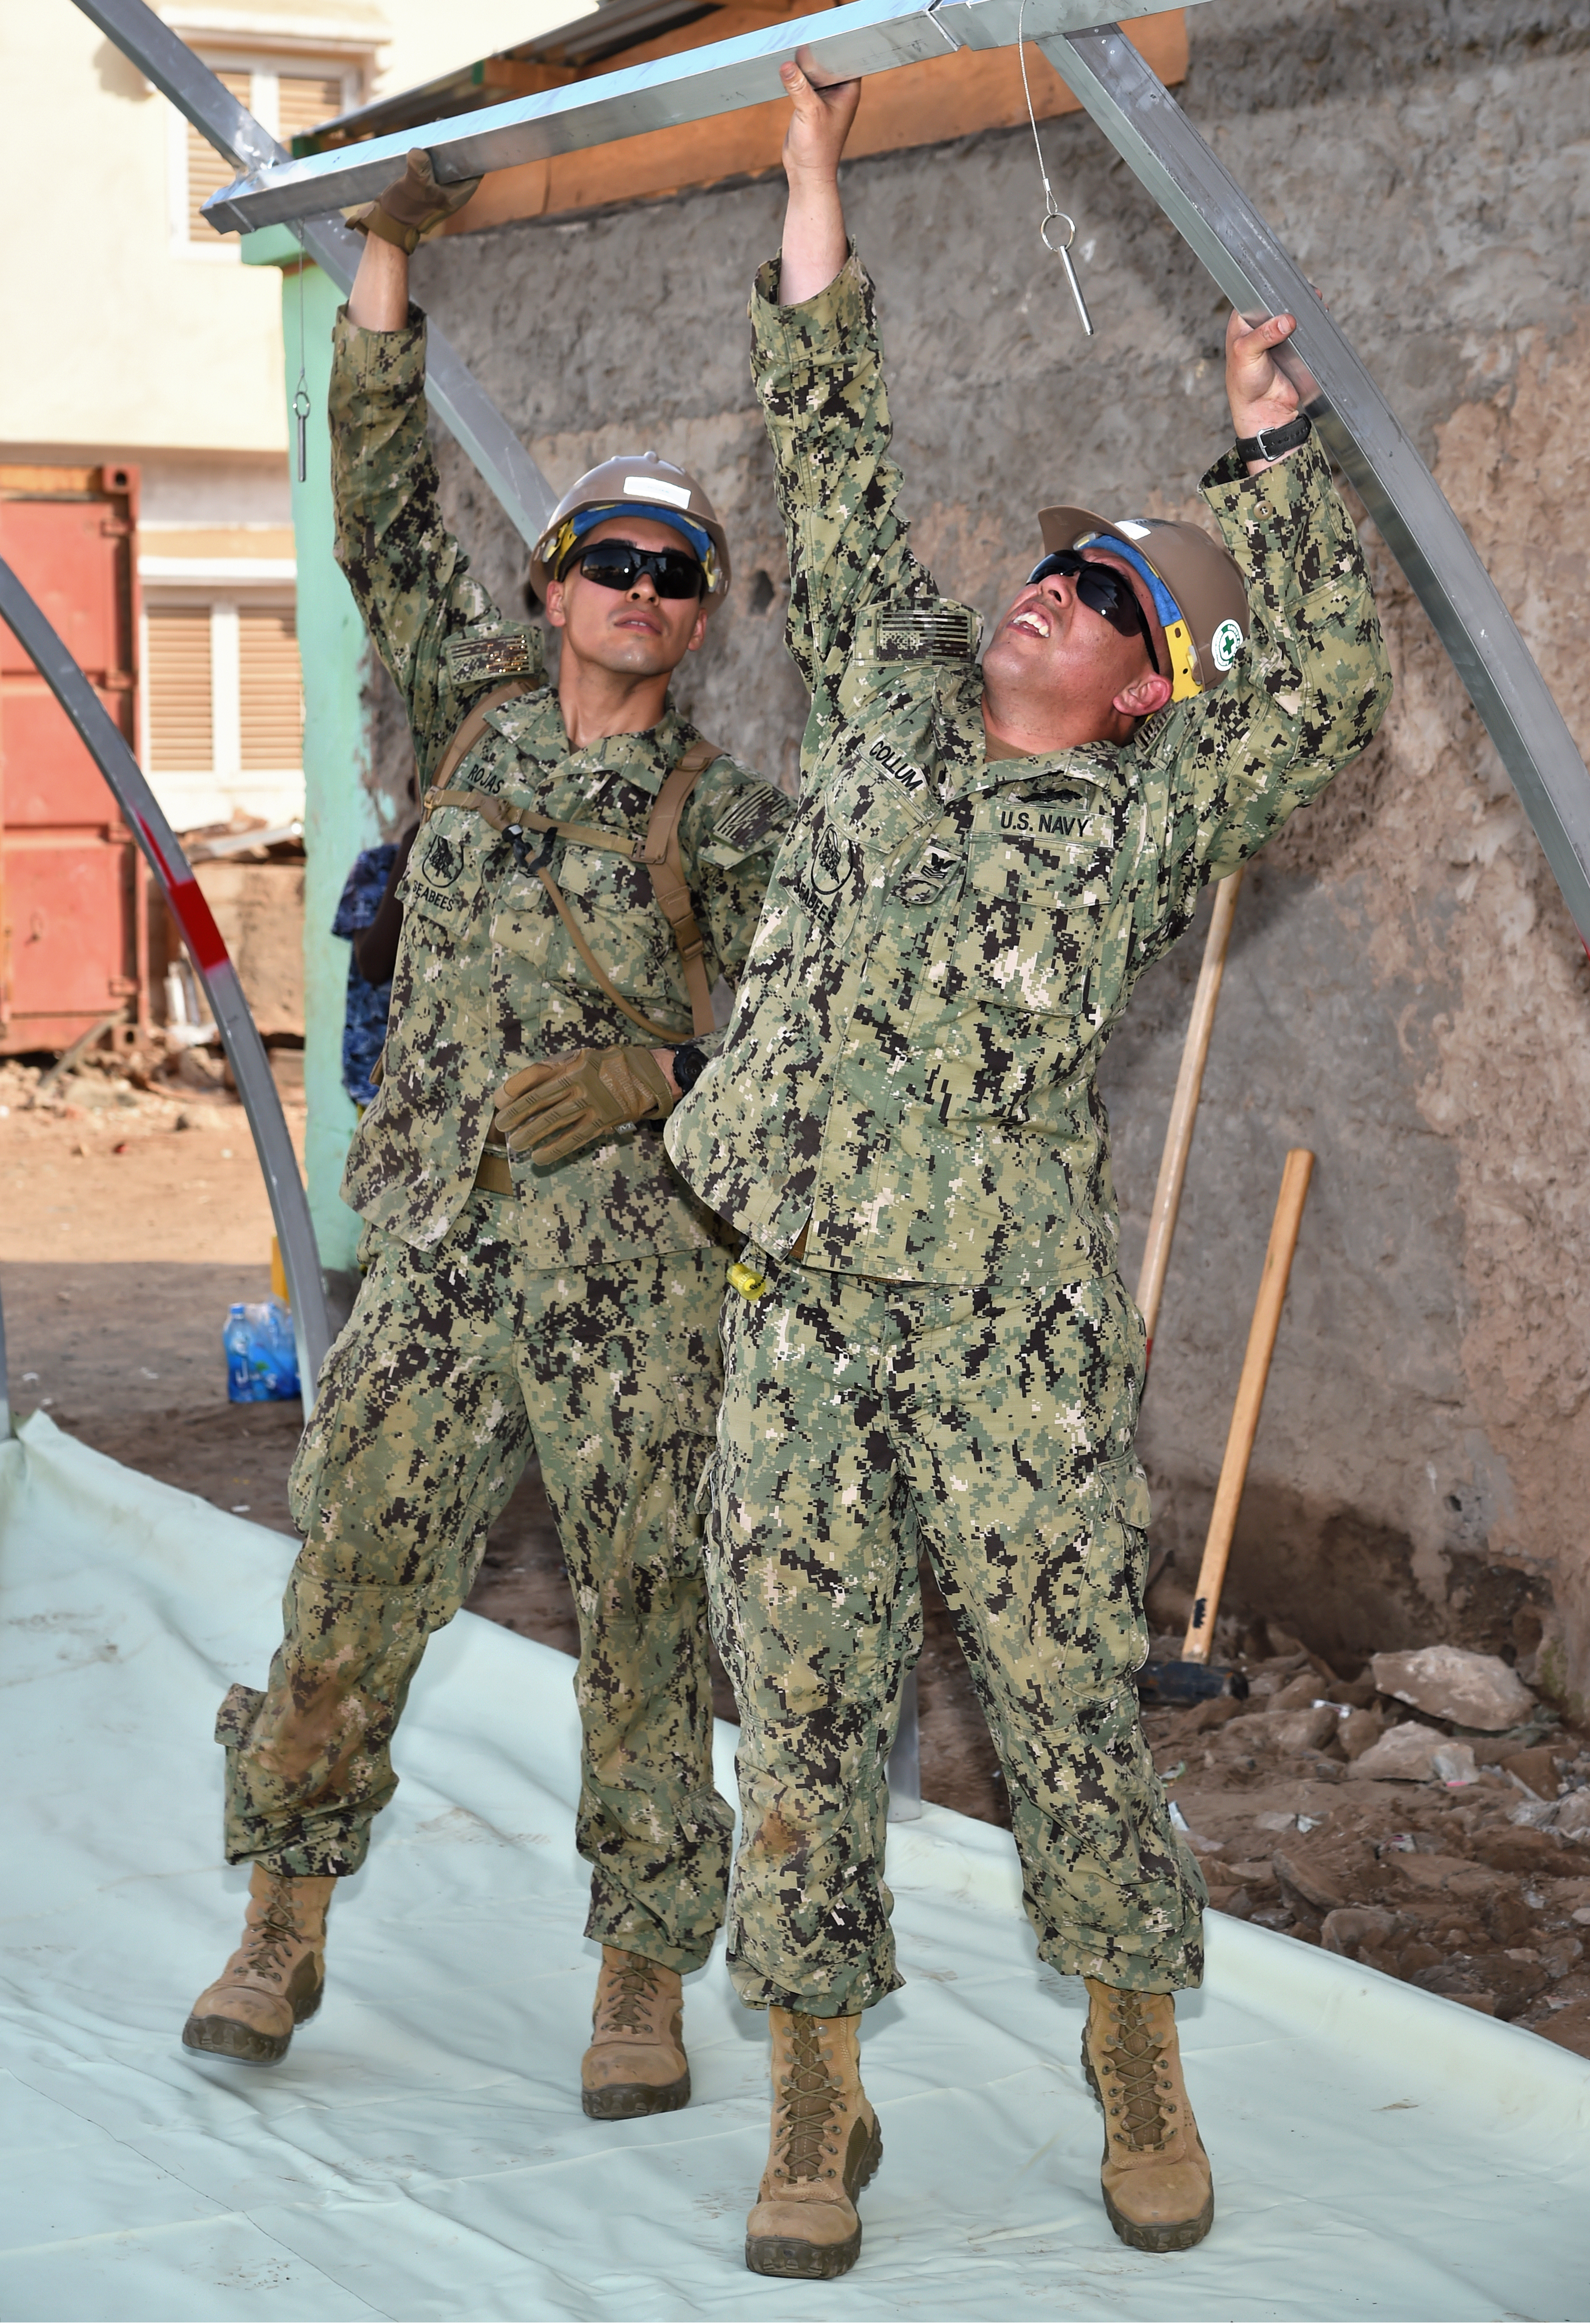 U.S. Navy Steelworker 1st Class Michael Collum, right, and Hospital Corpsman 3rd Class David Rojas, Seabees with Naval Mobile Construction Battalion 1, help to construct a modular shelter system in Djibouti City, Feb. 27, 2017. The shelter is one of six donated by U.S. manufacturer Alaska Shelters through the Global Action Coalition, and will provide additional classroom space for the Association for the Development and Protection of Children in downtown Djibouti. (U.S. Air National Guard photo by Master Sgt. Paul Gorman)